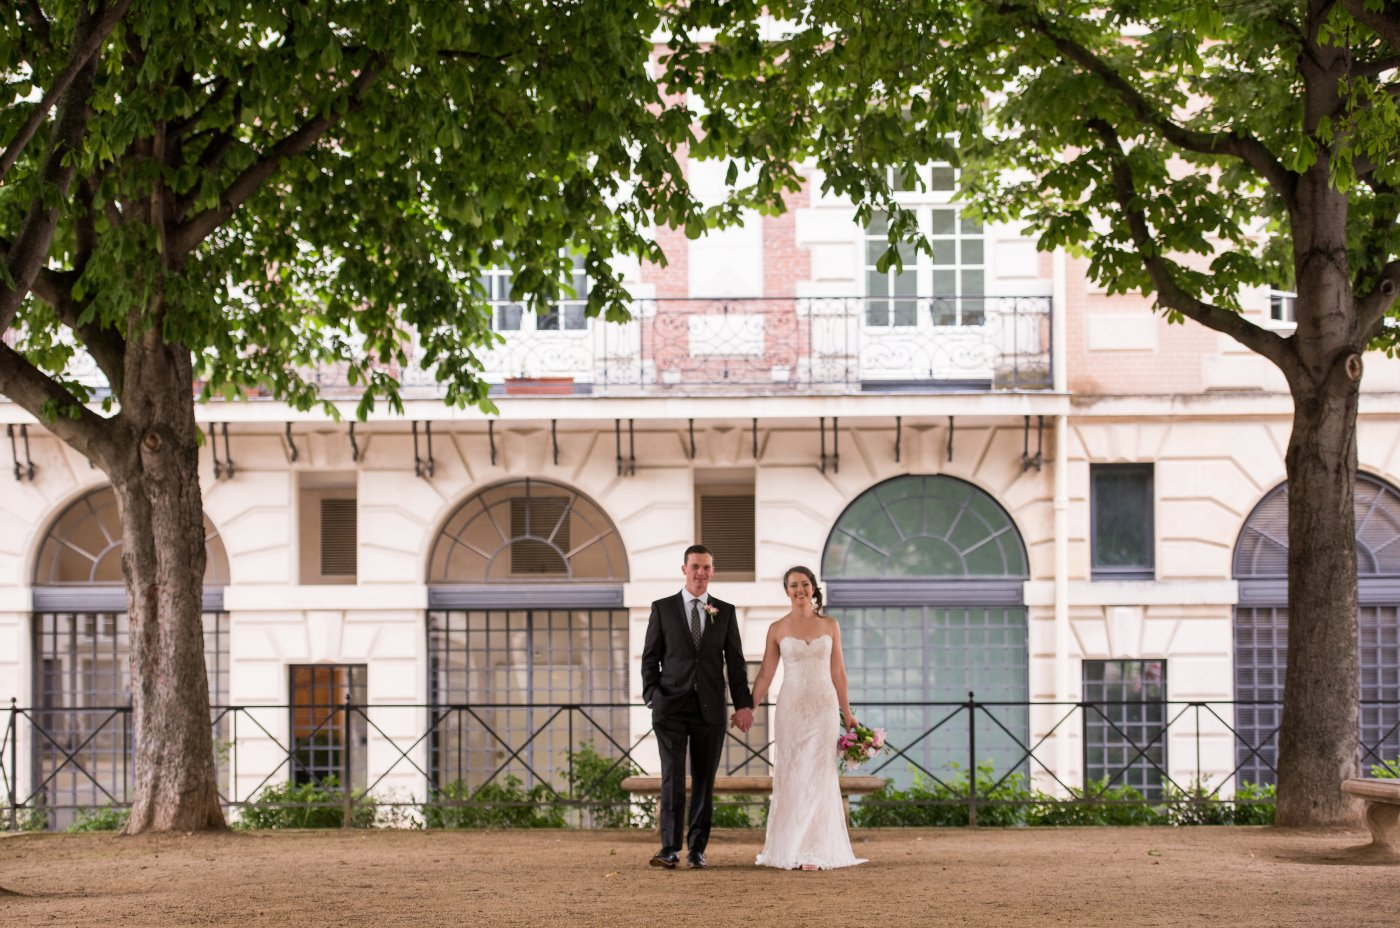 dlg paris luxury wedding planner paris